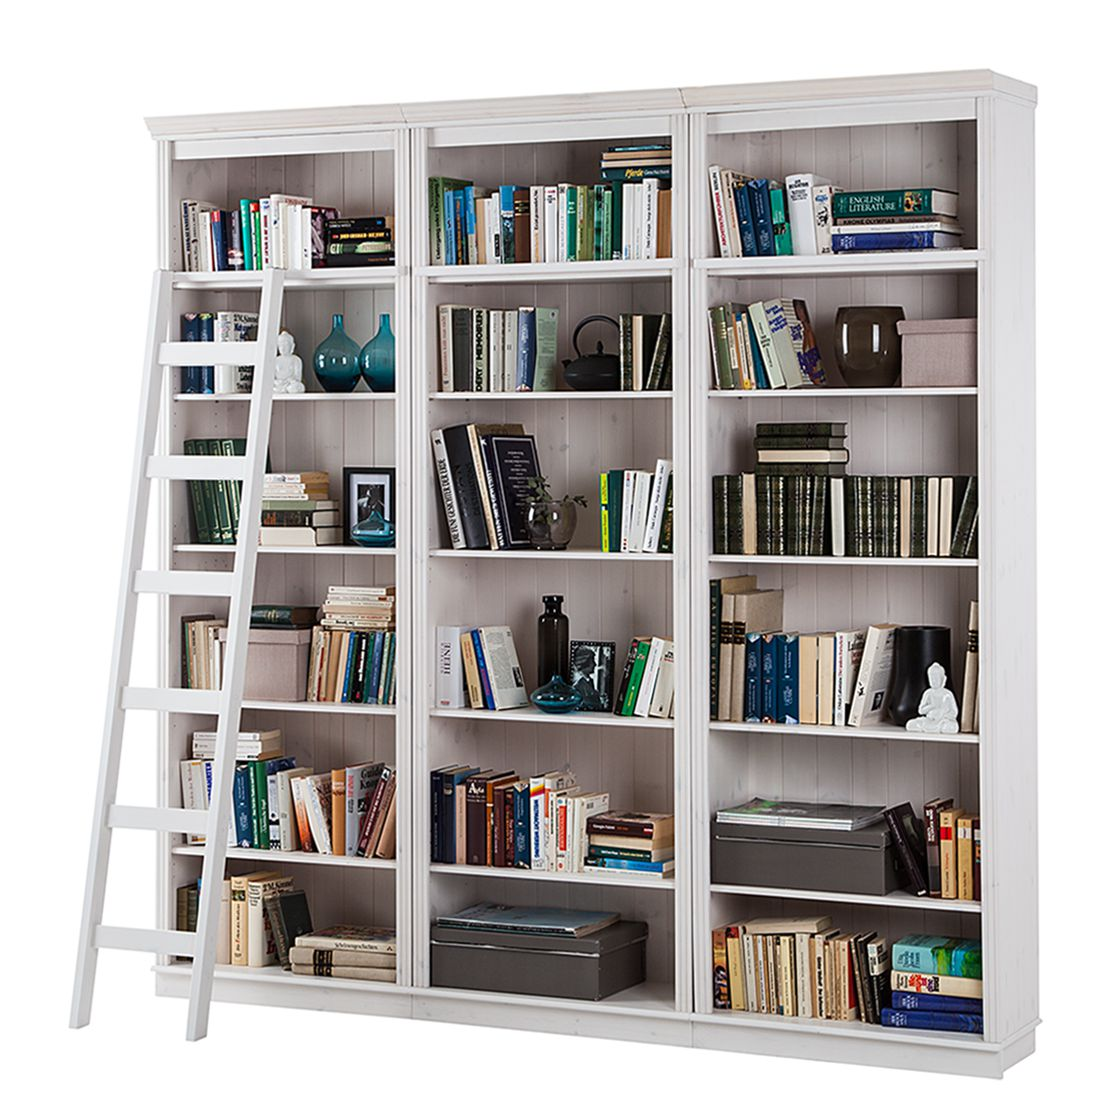 lars larson regalleiter massiv b cherwand wandregal bibliothek verstauen. Black Bedroom Furniture Sets. Home Design Ideas